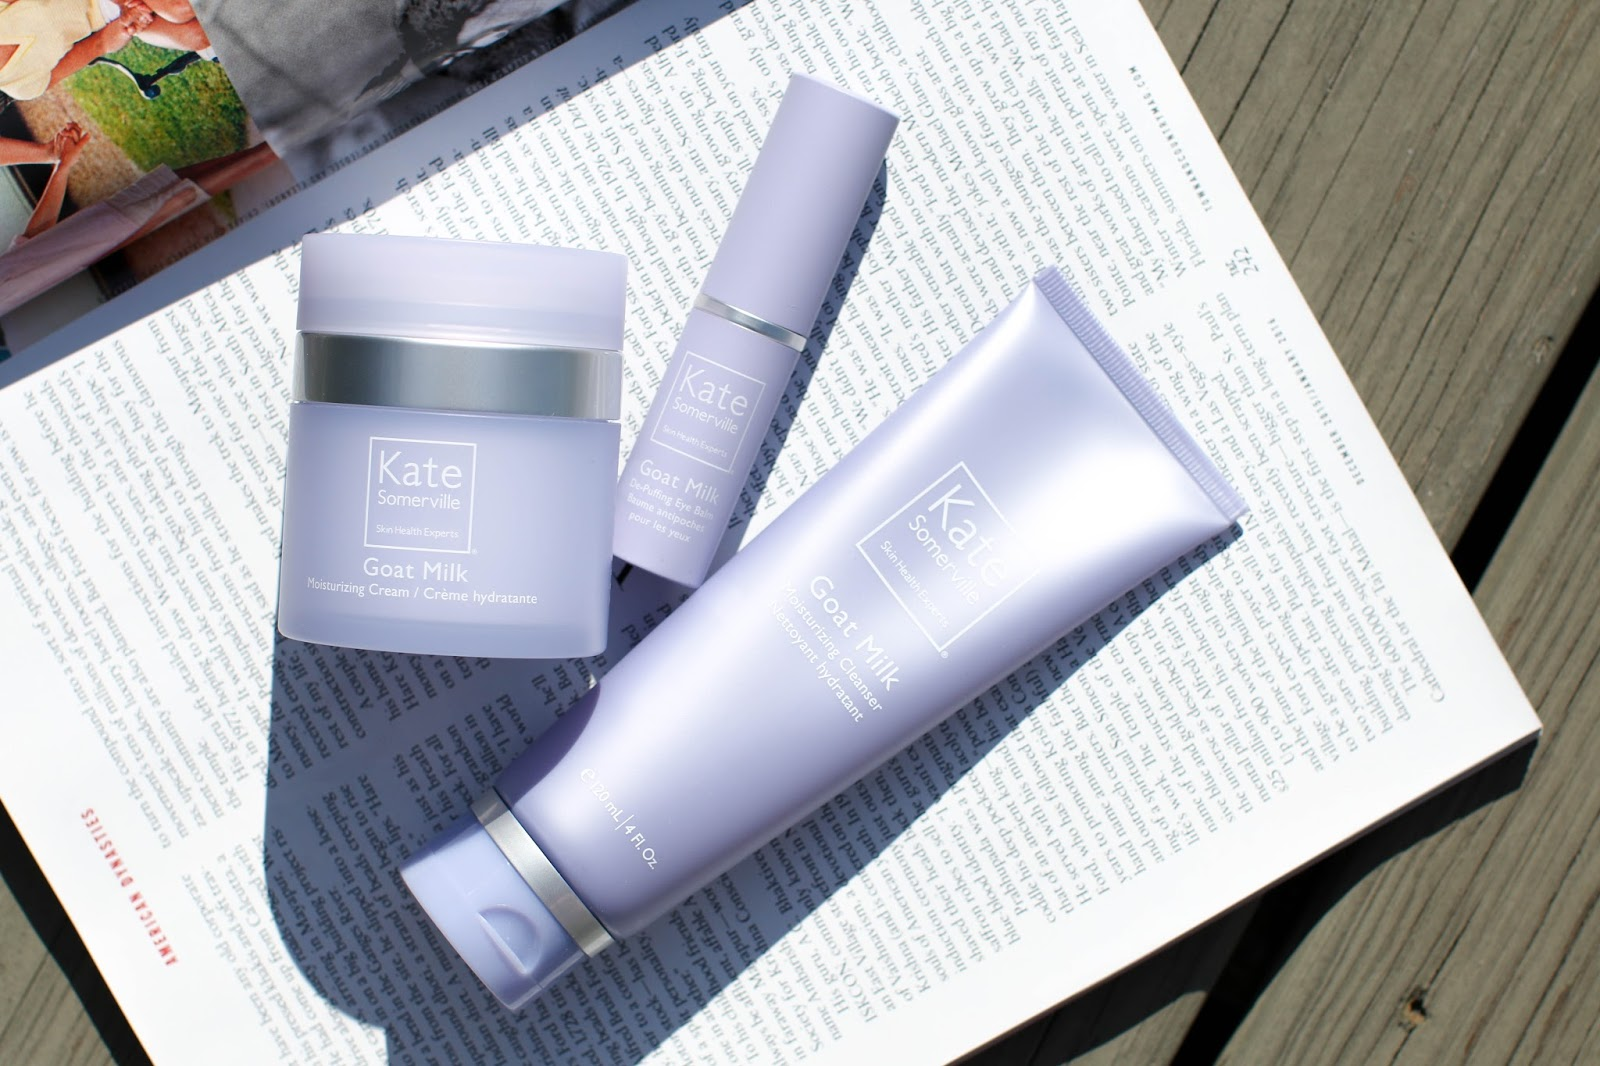 Review of the new Kate Somerville Goat Milk Collection.